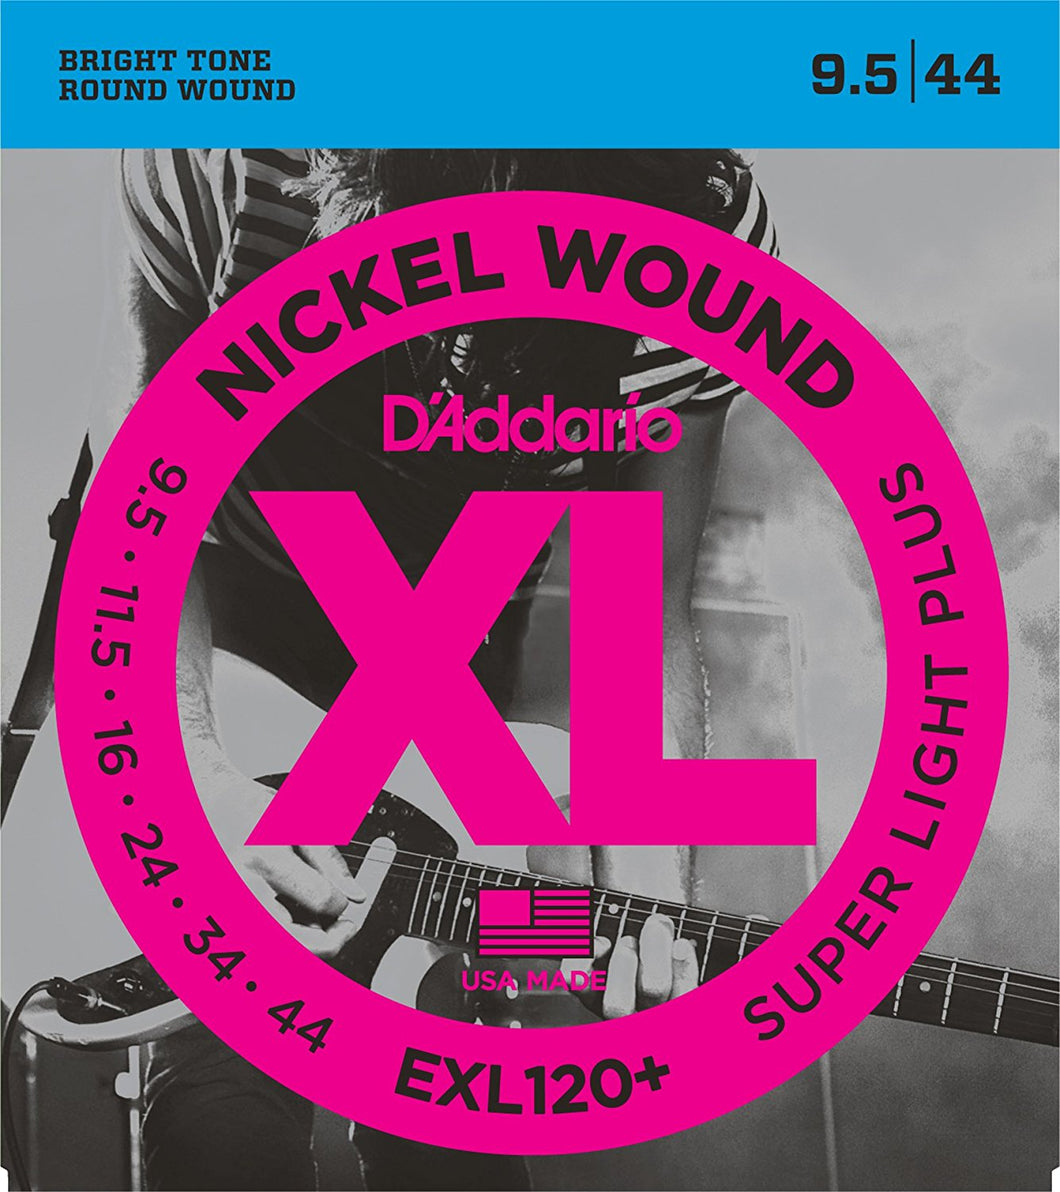 D'Addario Super Light Plus .0095-.044 EXL120+ Nickel Wound Electric Guitar Strings | The  Music Gallery